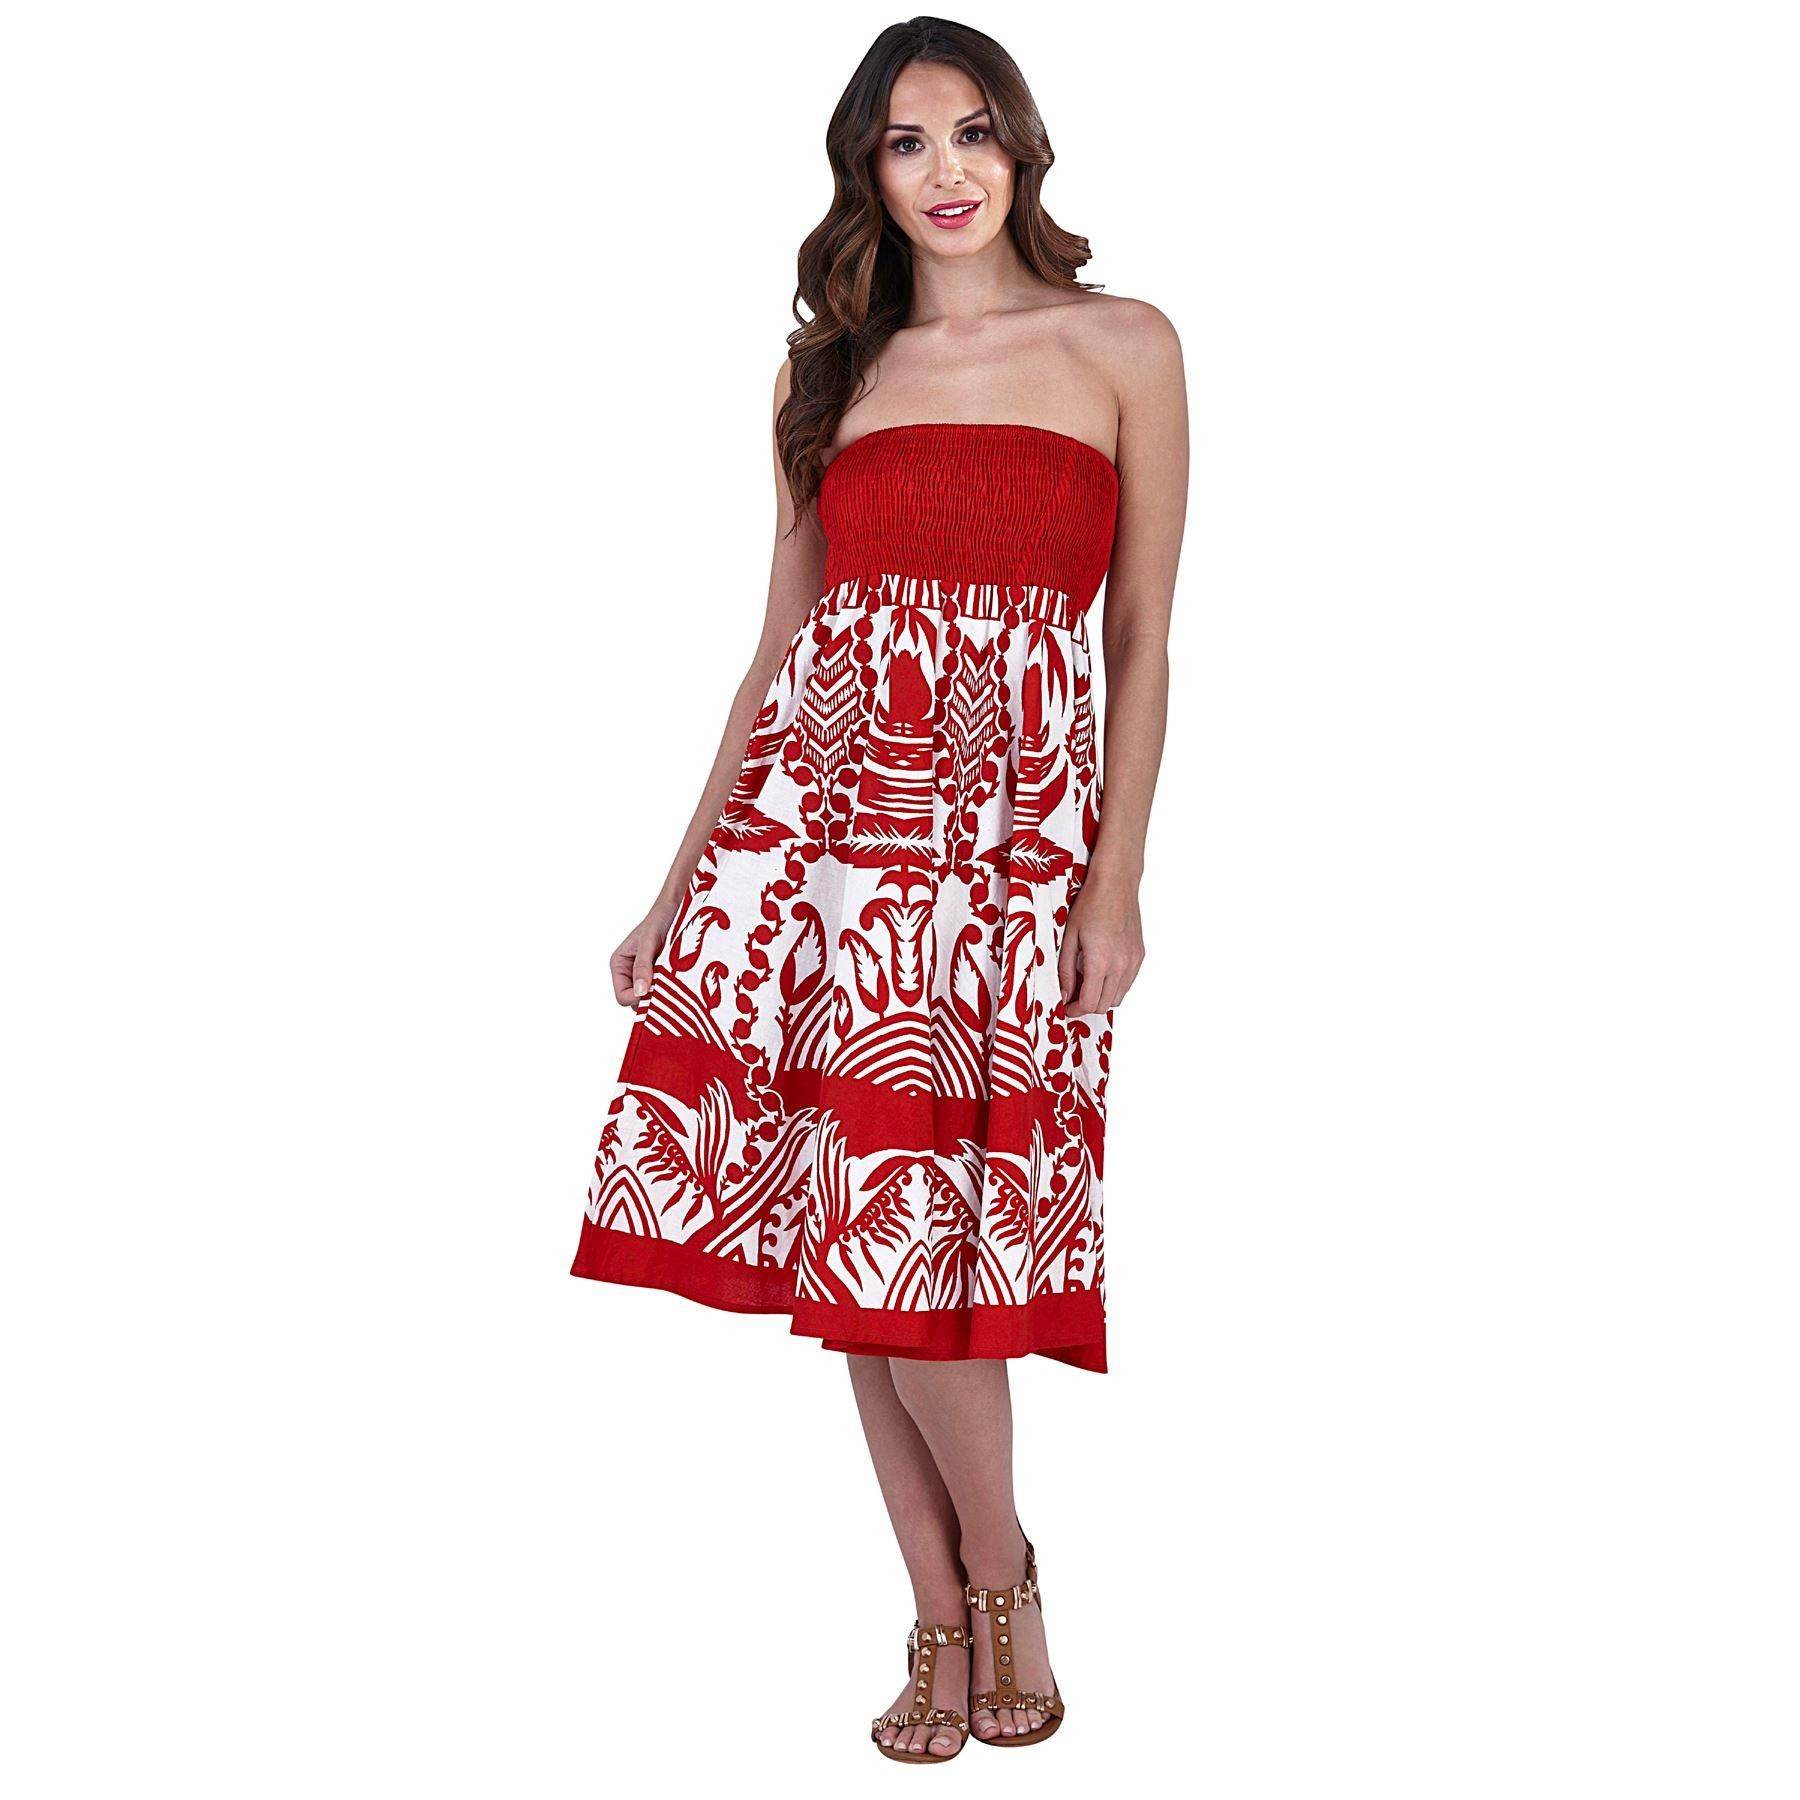 Pistachio Floral 2 in 1 Dress - Red